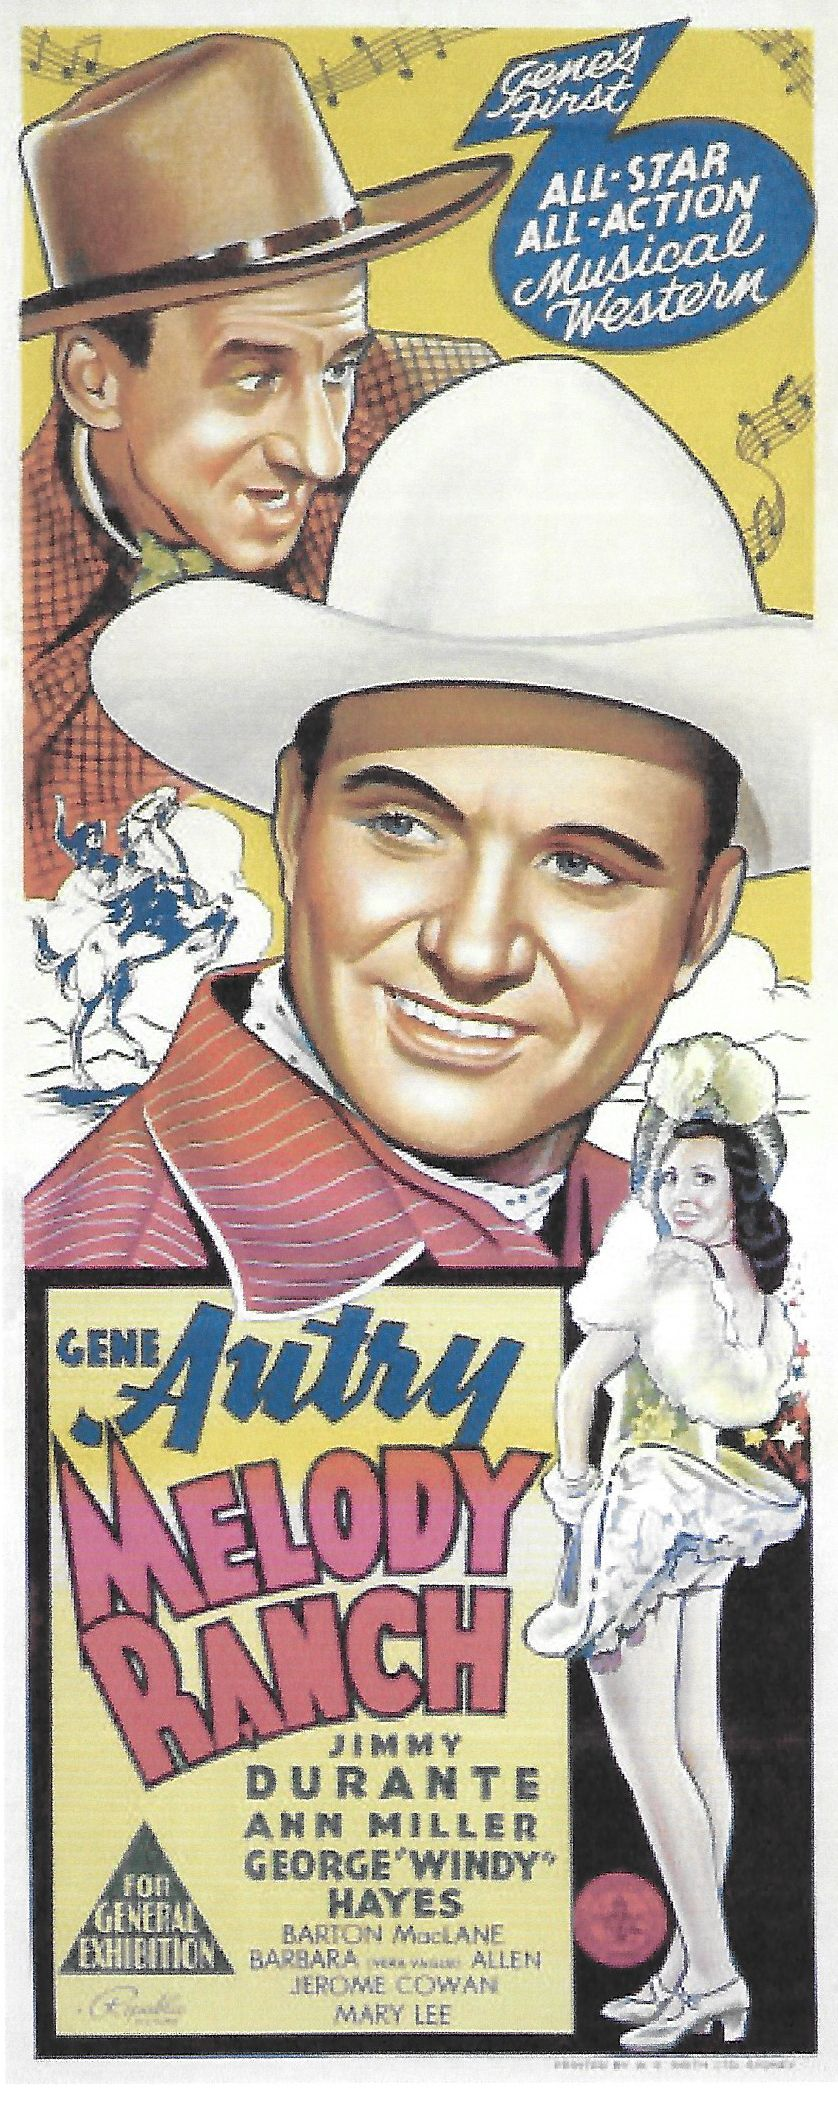 Gene Autry, Jimmy Durante, and Ann Miller in Melody Ranch (1940)